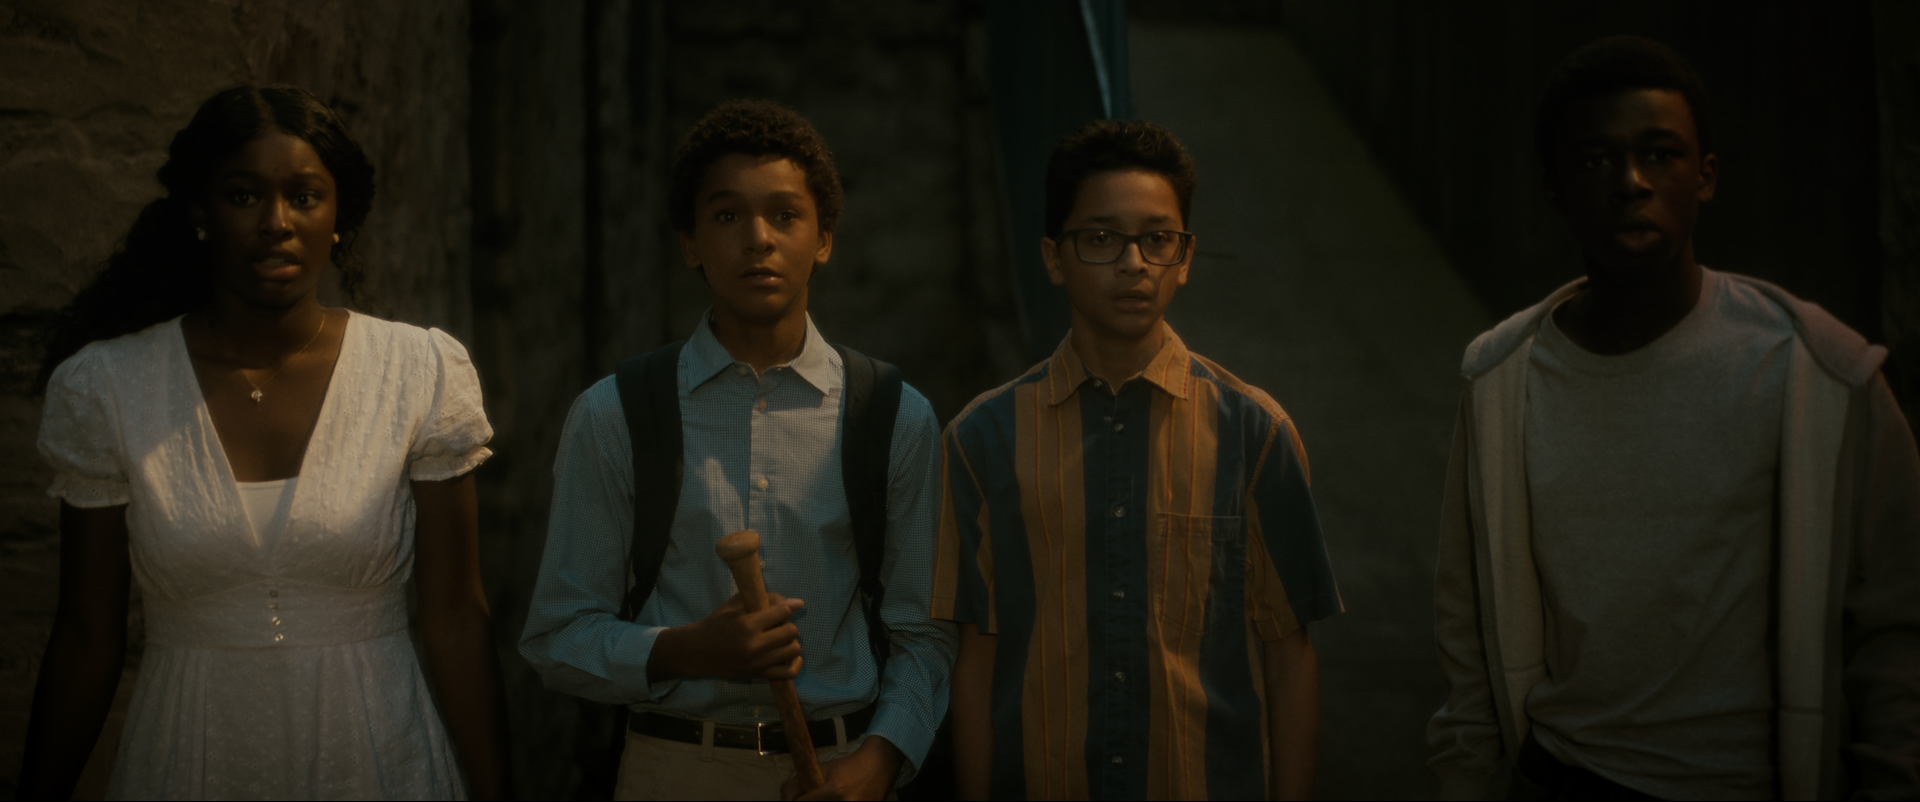 Three boys and a girl stand side by side in a dark room